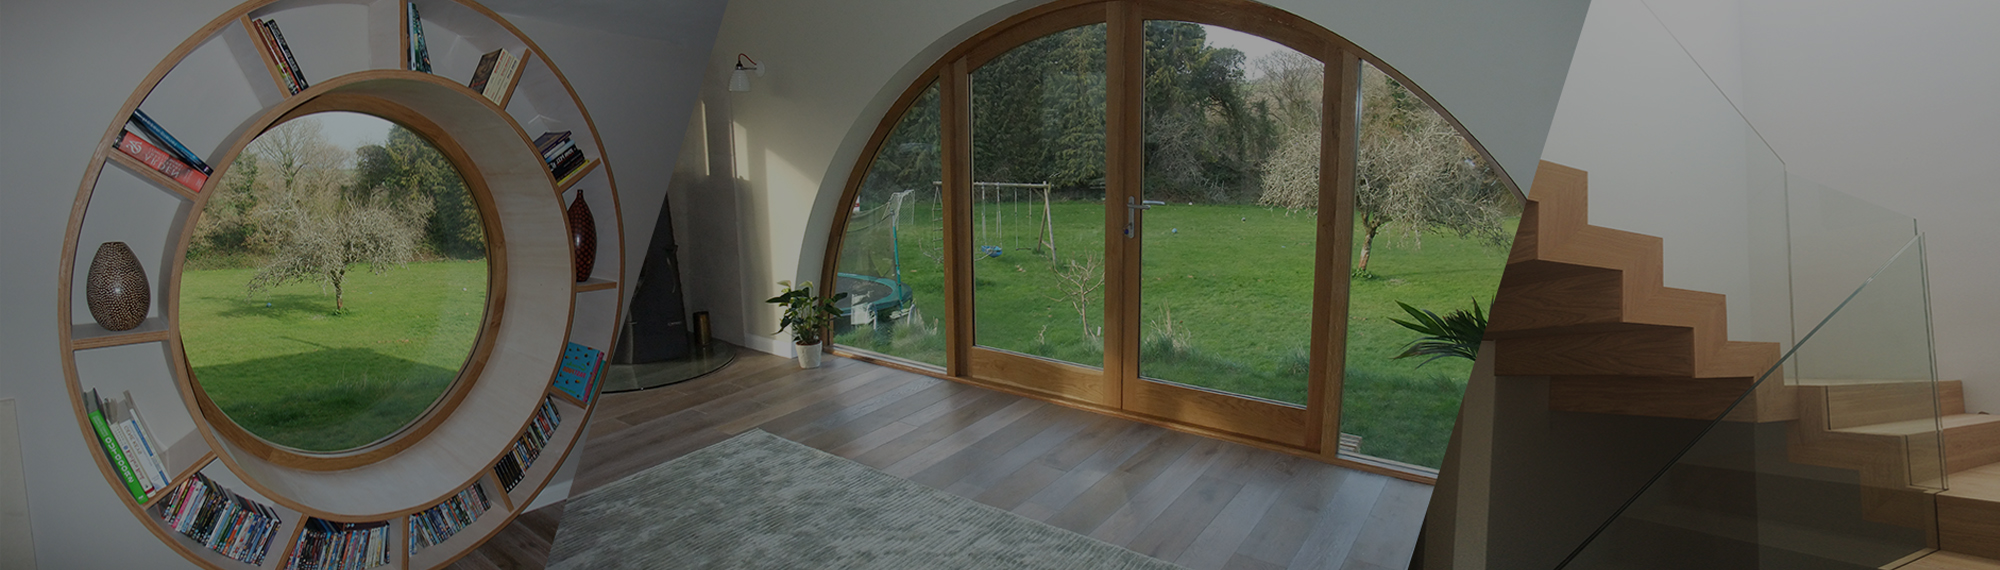 Bespoke Joinery Devon